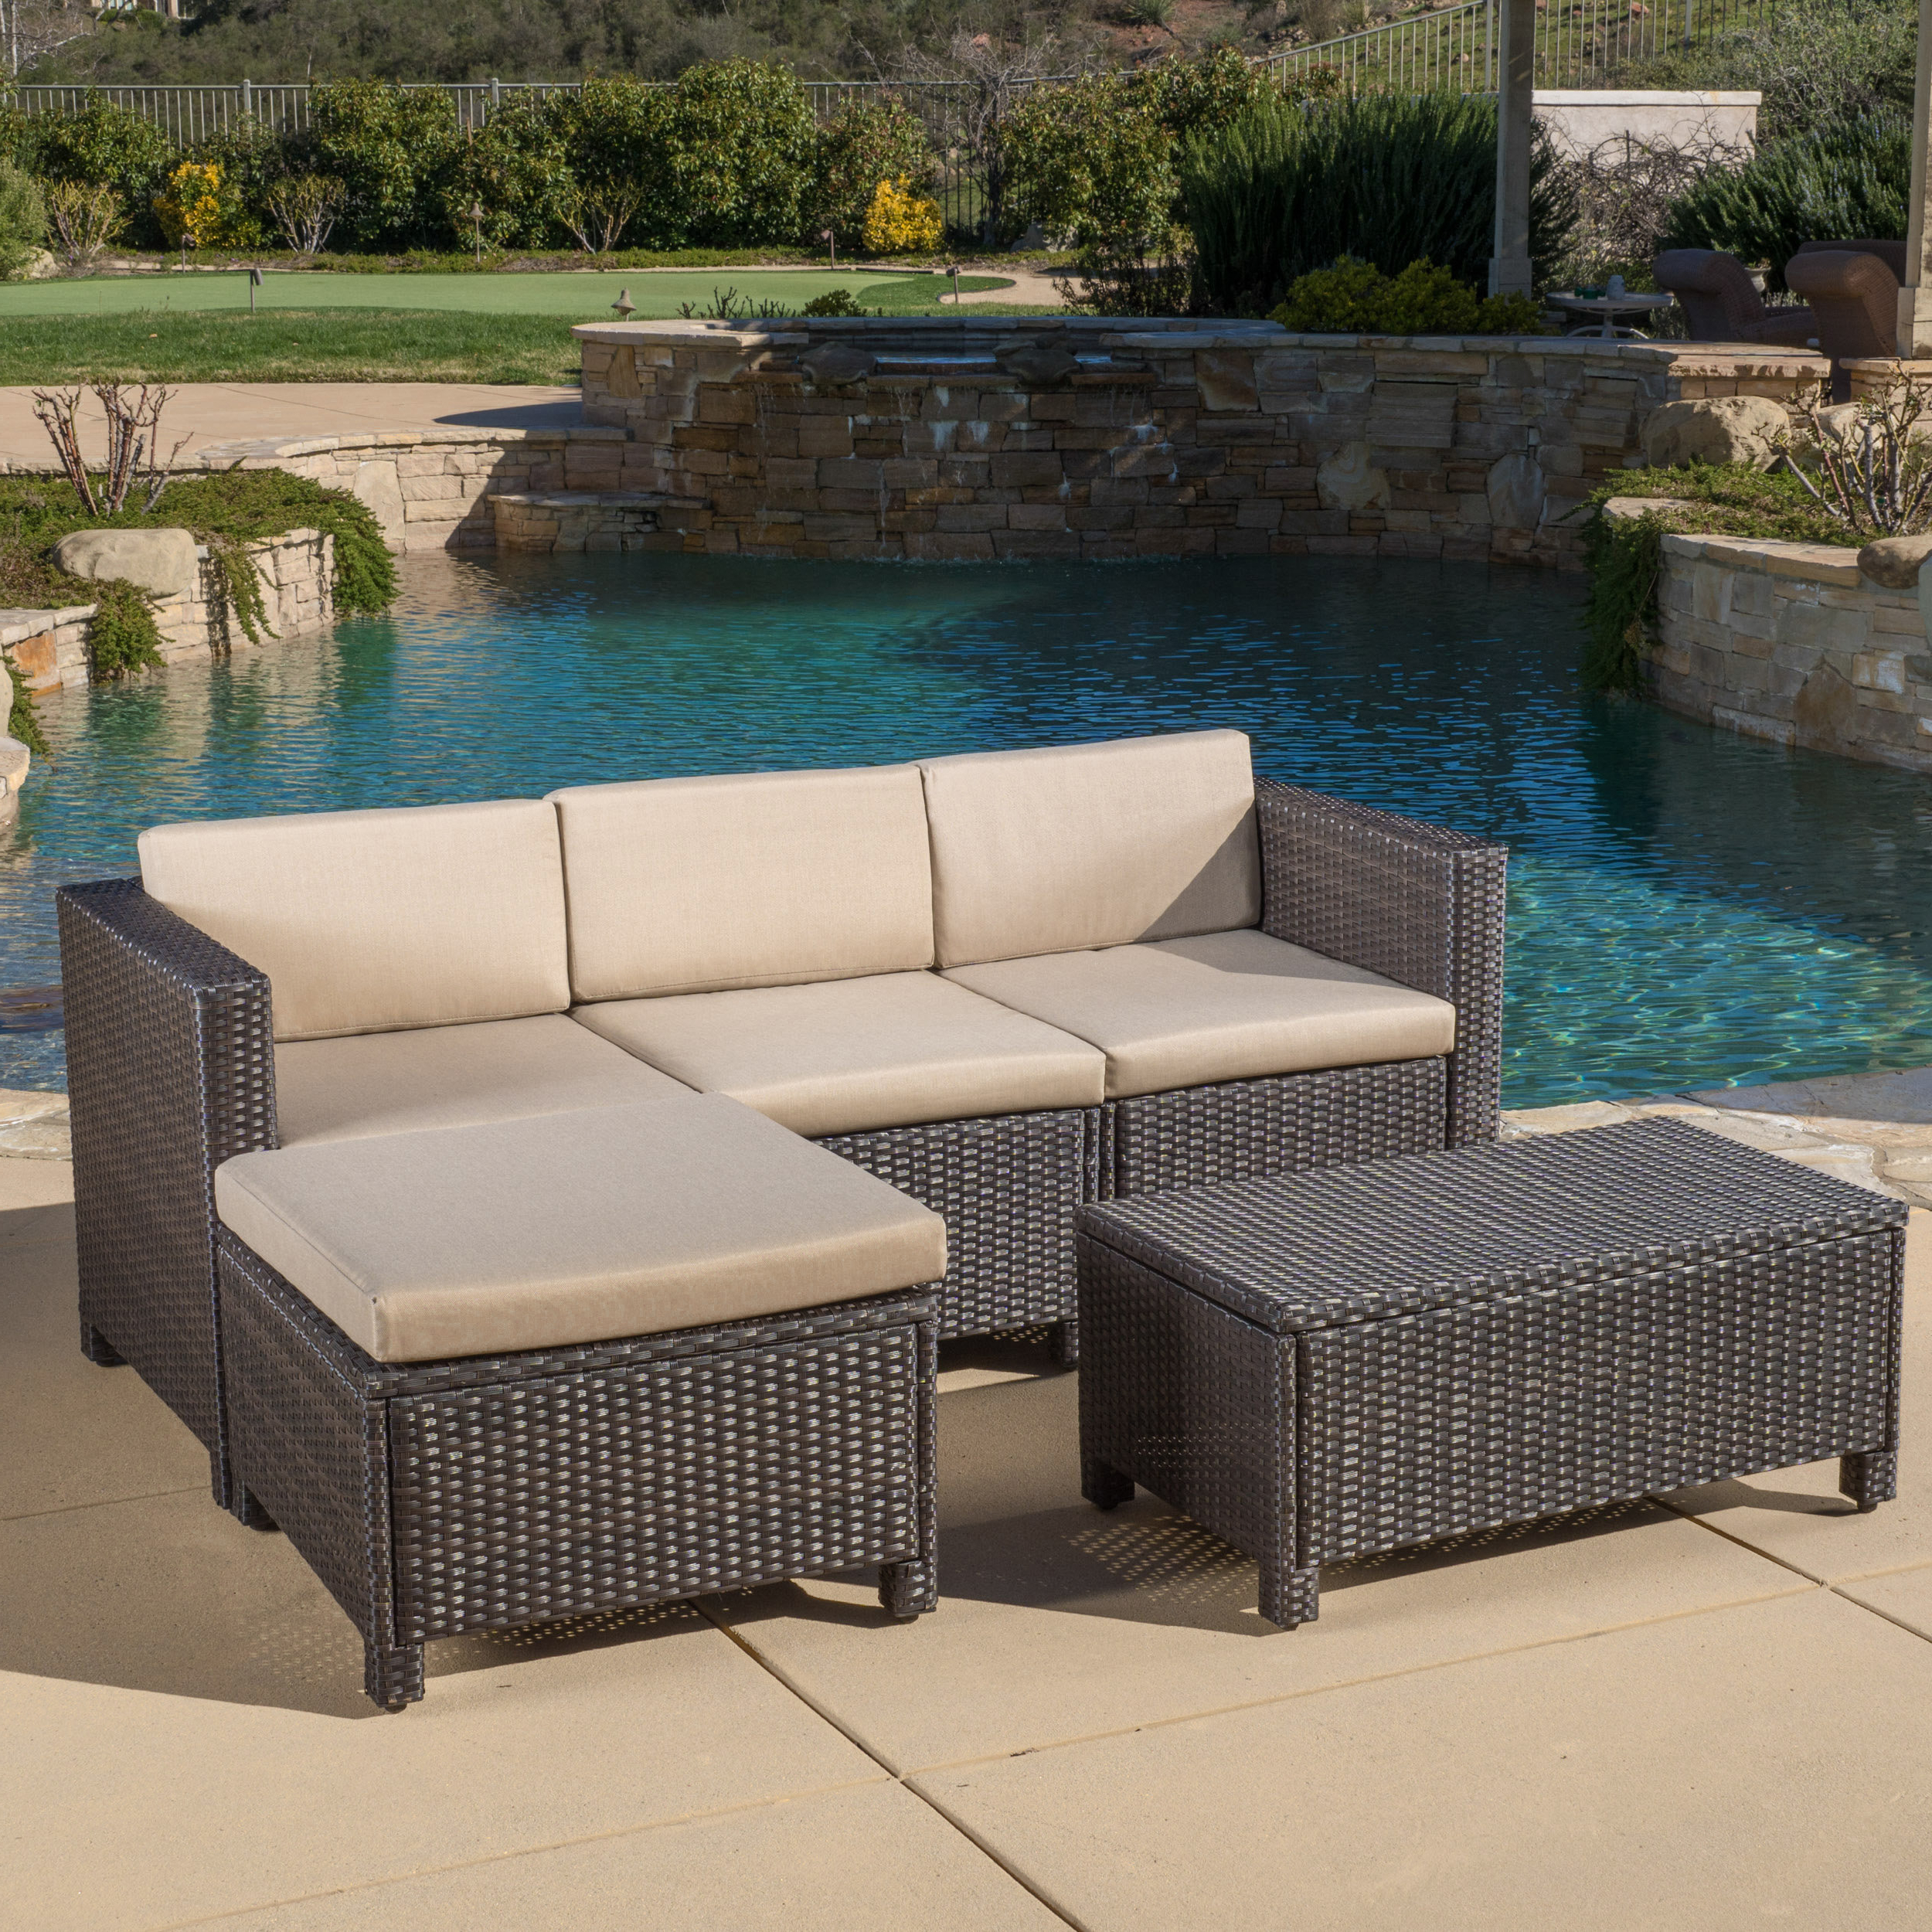 Latest Furst 5 Piece Sectional Seating Group With Cushions Regarding Furst Patio Sofas With Cushion (Gallery 17 of 20)